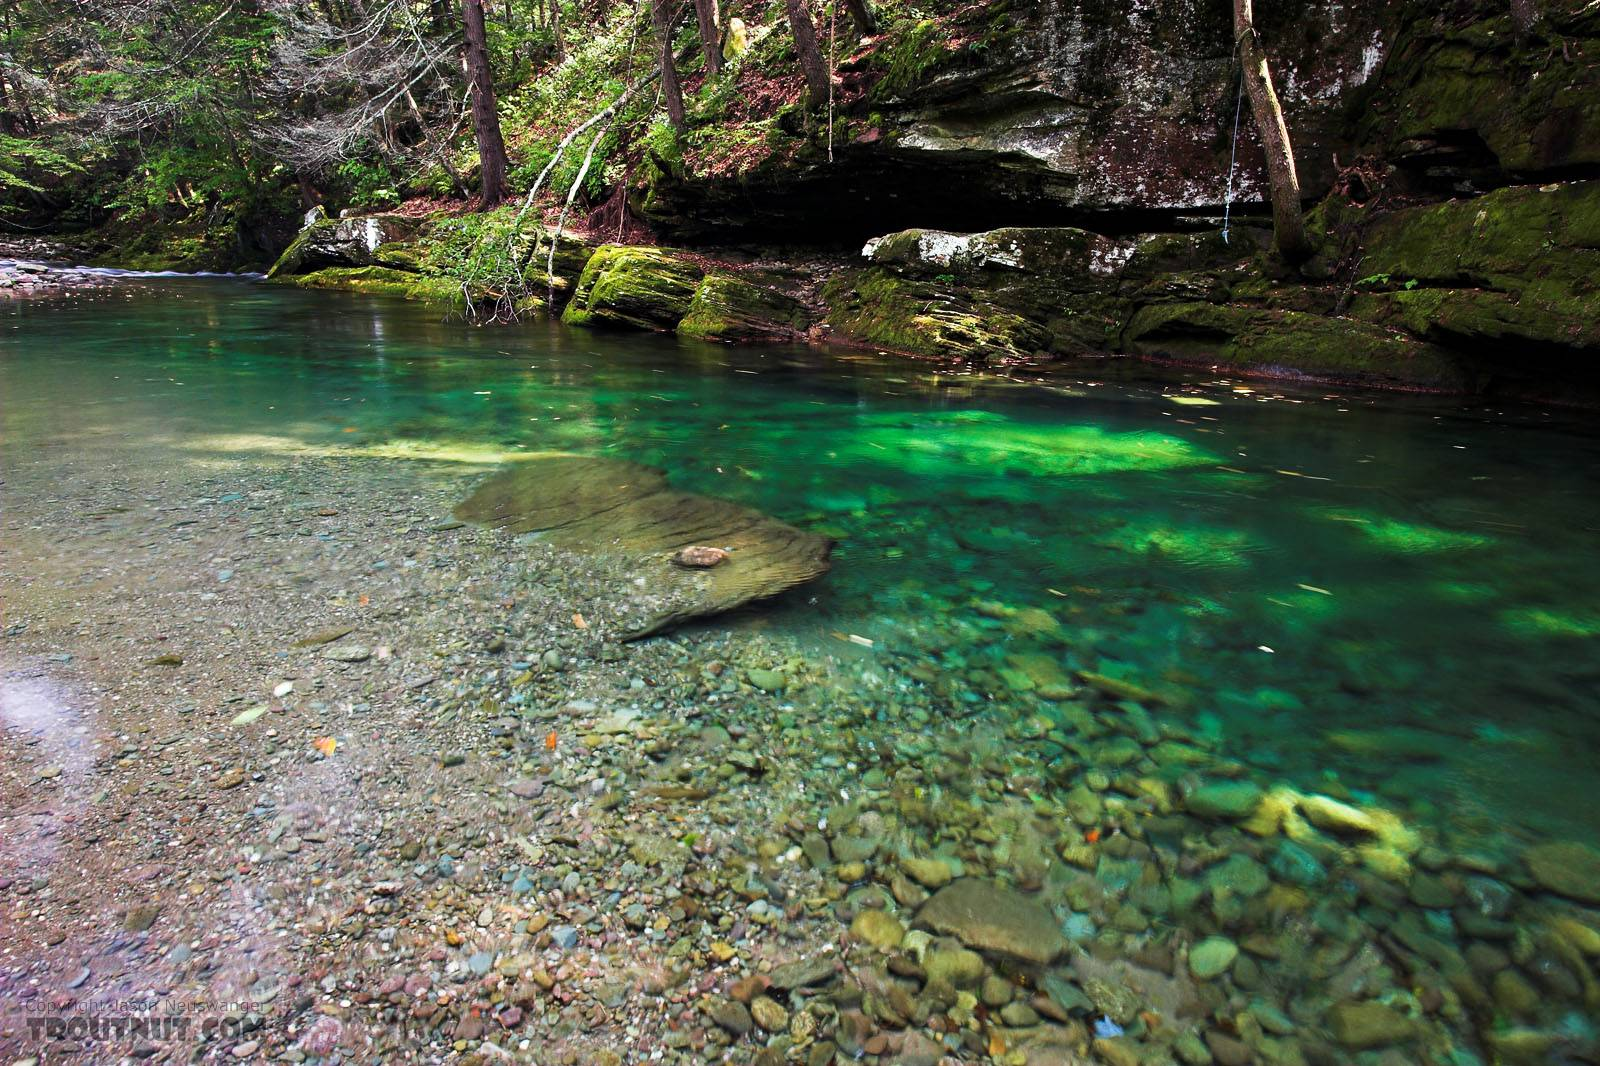 This is a very deep pool in a very clear stream.  It's well-known for its brookies, but I neither saw nor caught any in this inviting pool.  I drove a few miles upstream and ran into the expected number of eager little fish. From Rondout Creek in New York.